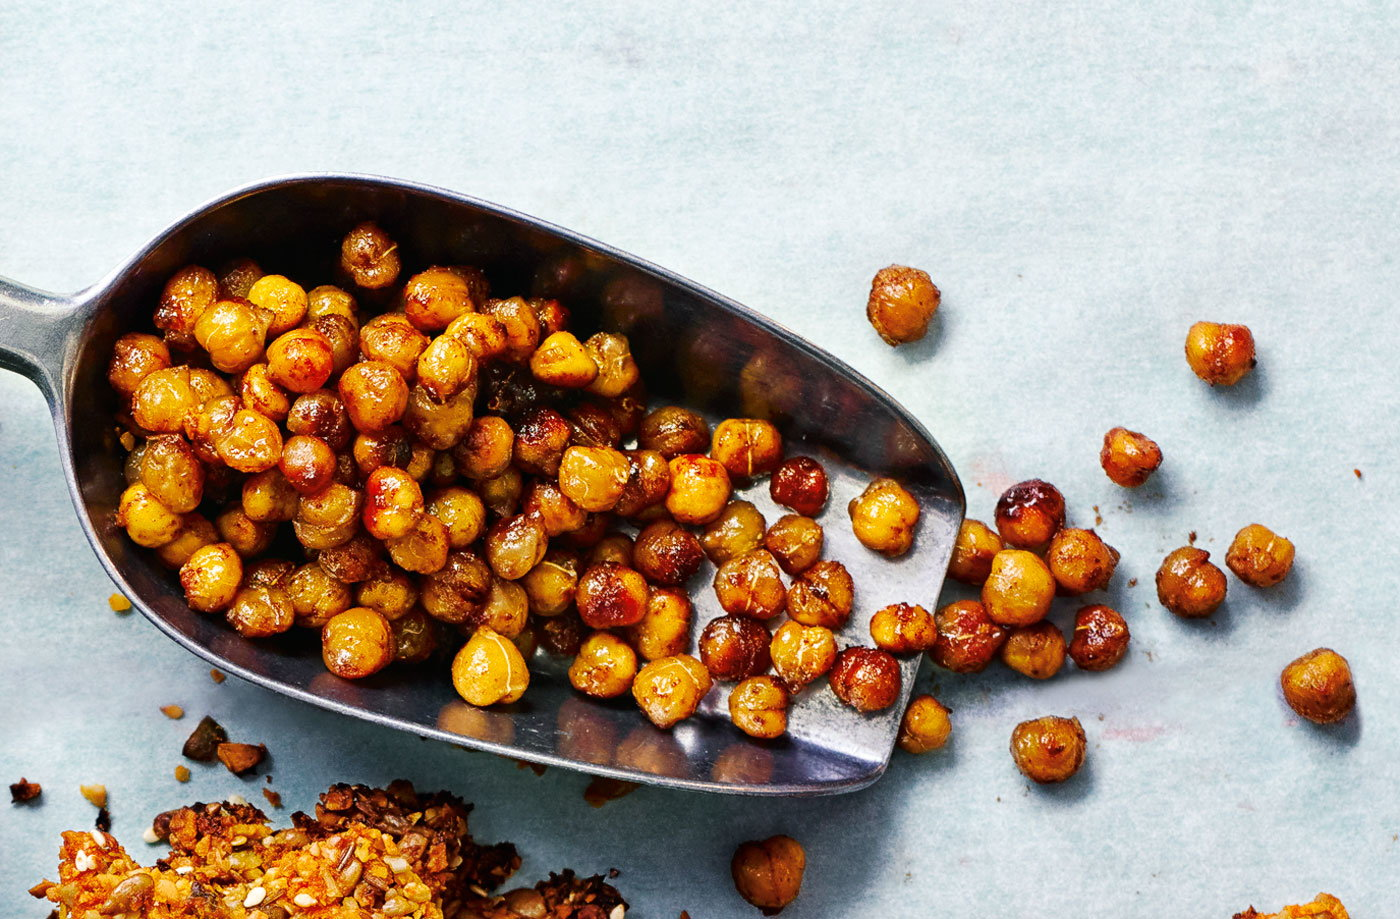 Maple and cinnamon roasted chickpeas